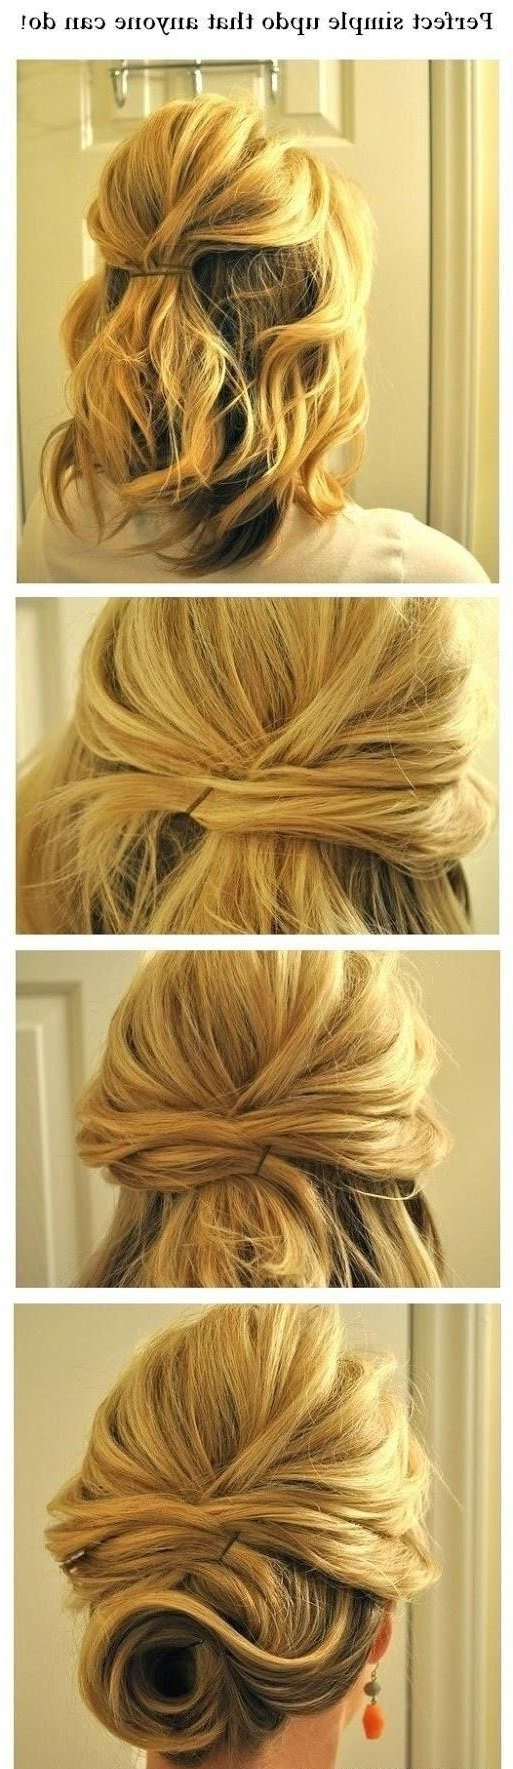 15 Cute And Easy Hairstyle Tutorials For Medium Length Hair – Gurl Throughout Famous Do It Yourself Wedding Hairstyles For Medium Length Hair (View 8 of 15)